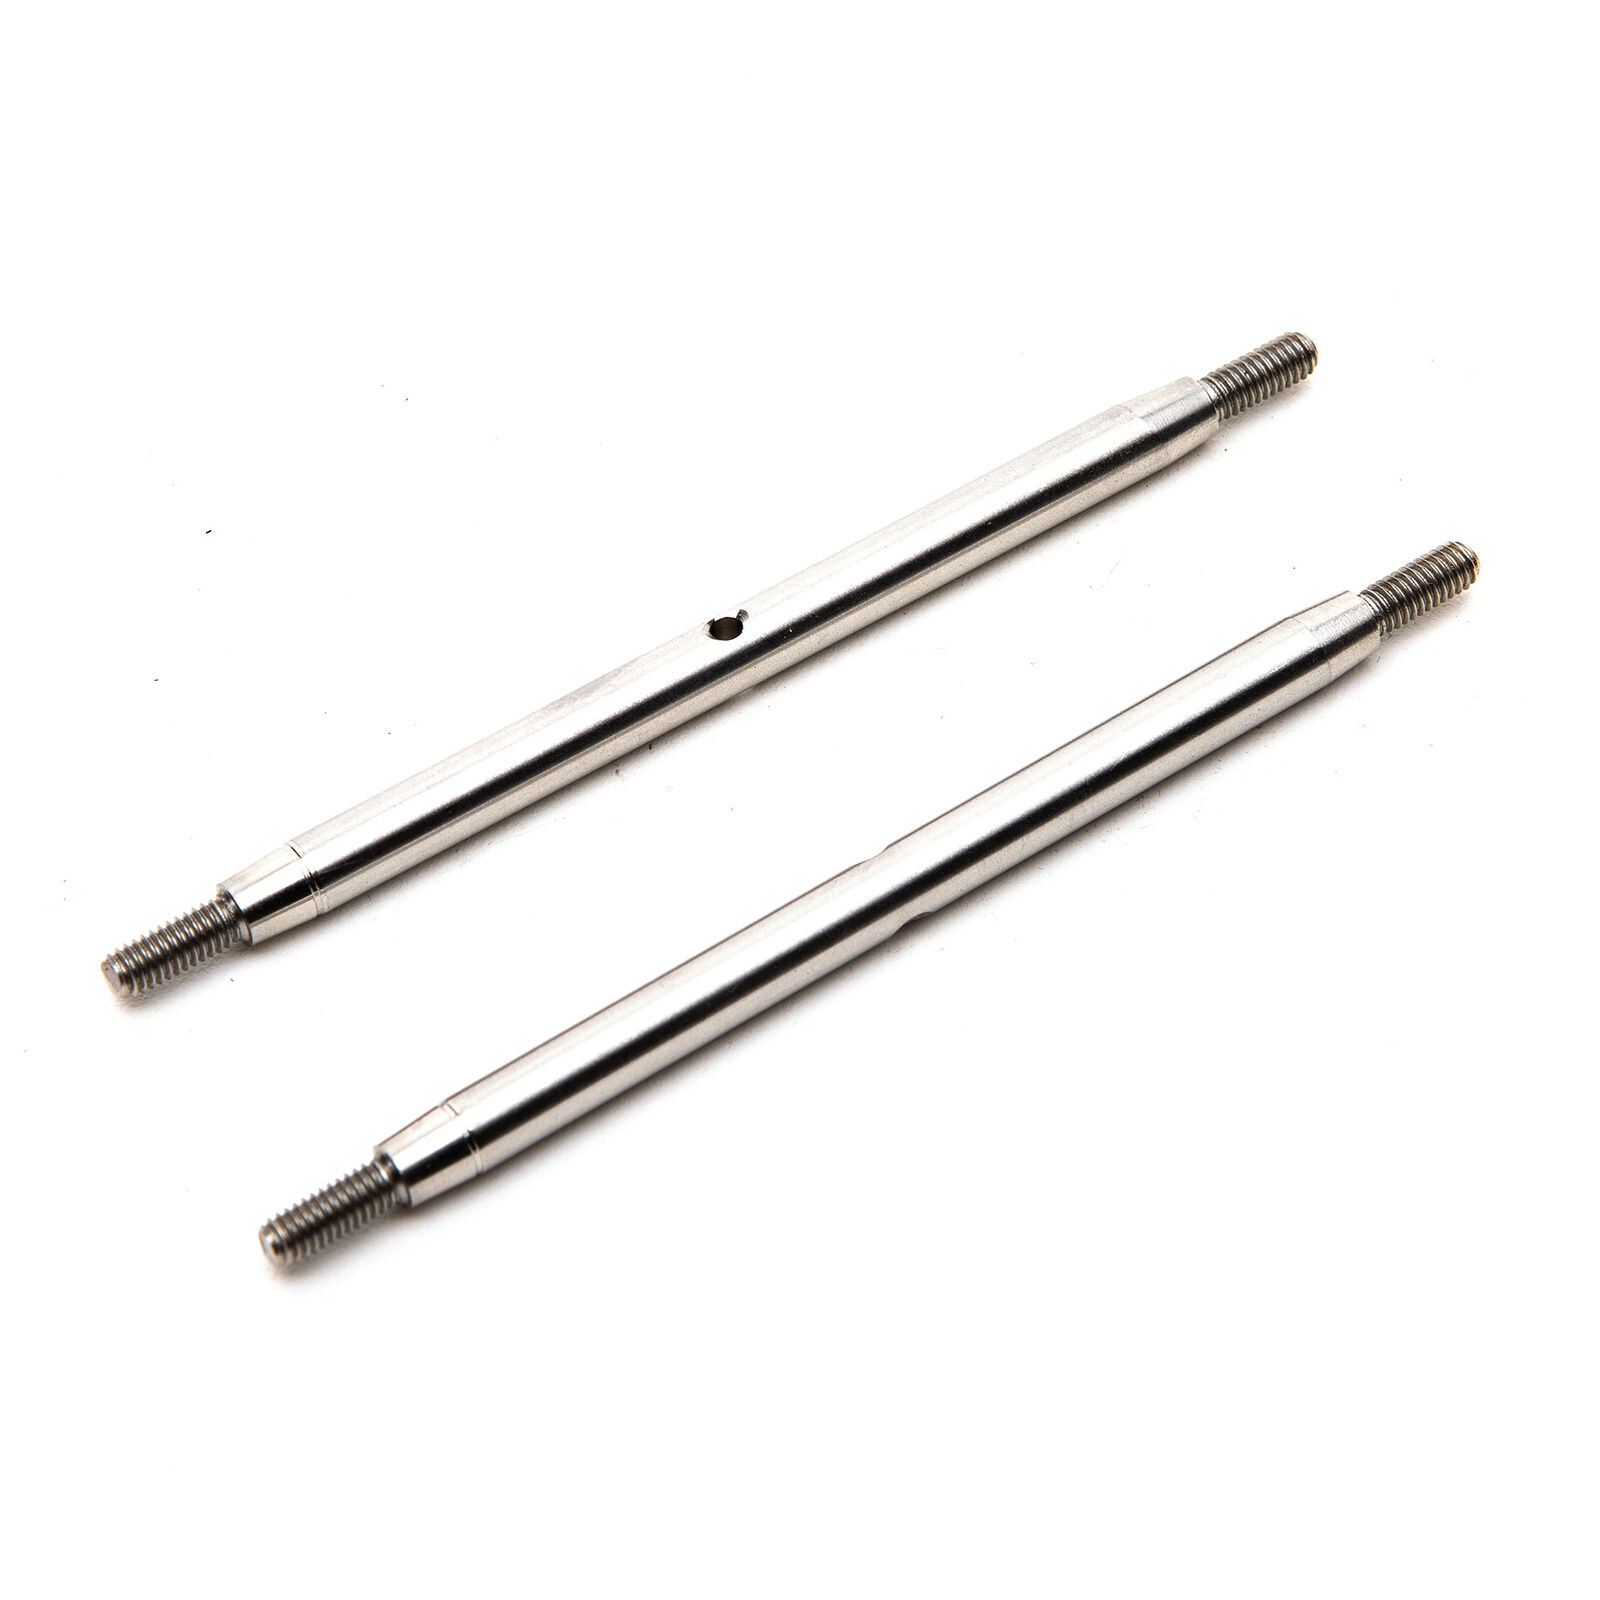 Stainless Steel M6x 105mm Link (2)  RBX10